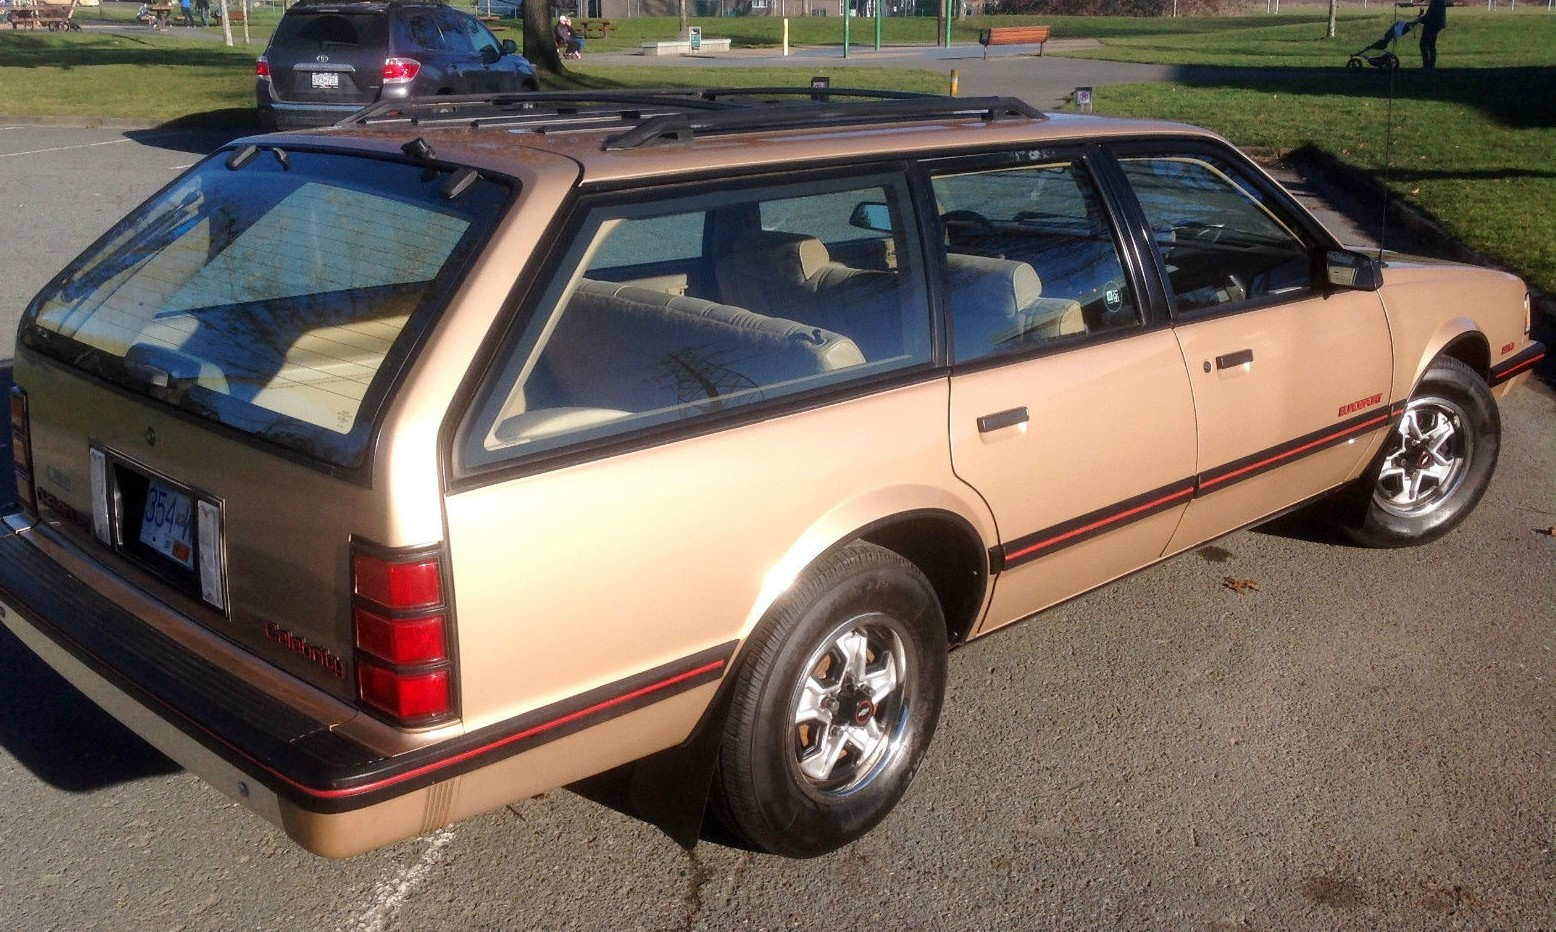 1984 Chevrolet Celebrity Cars and Parts | eBay